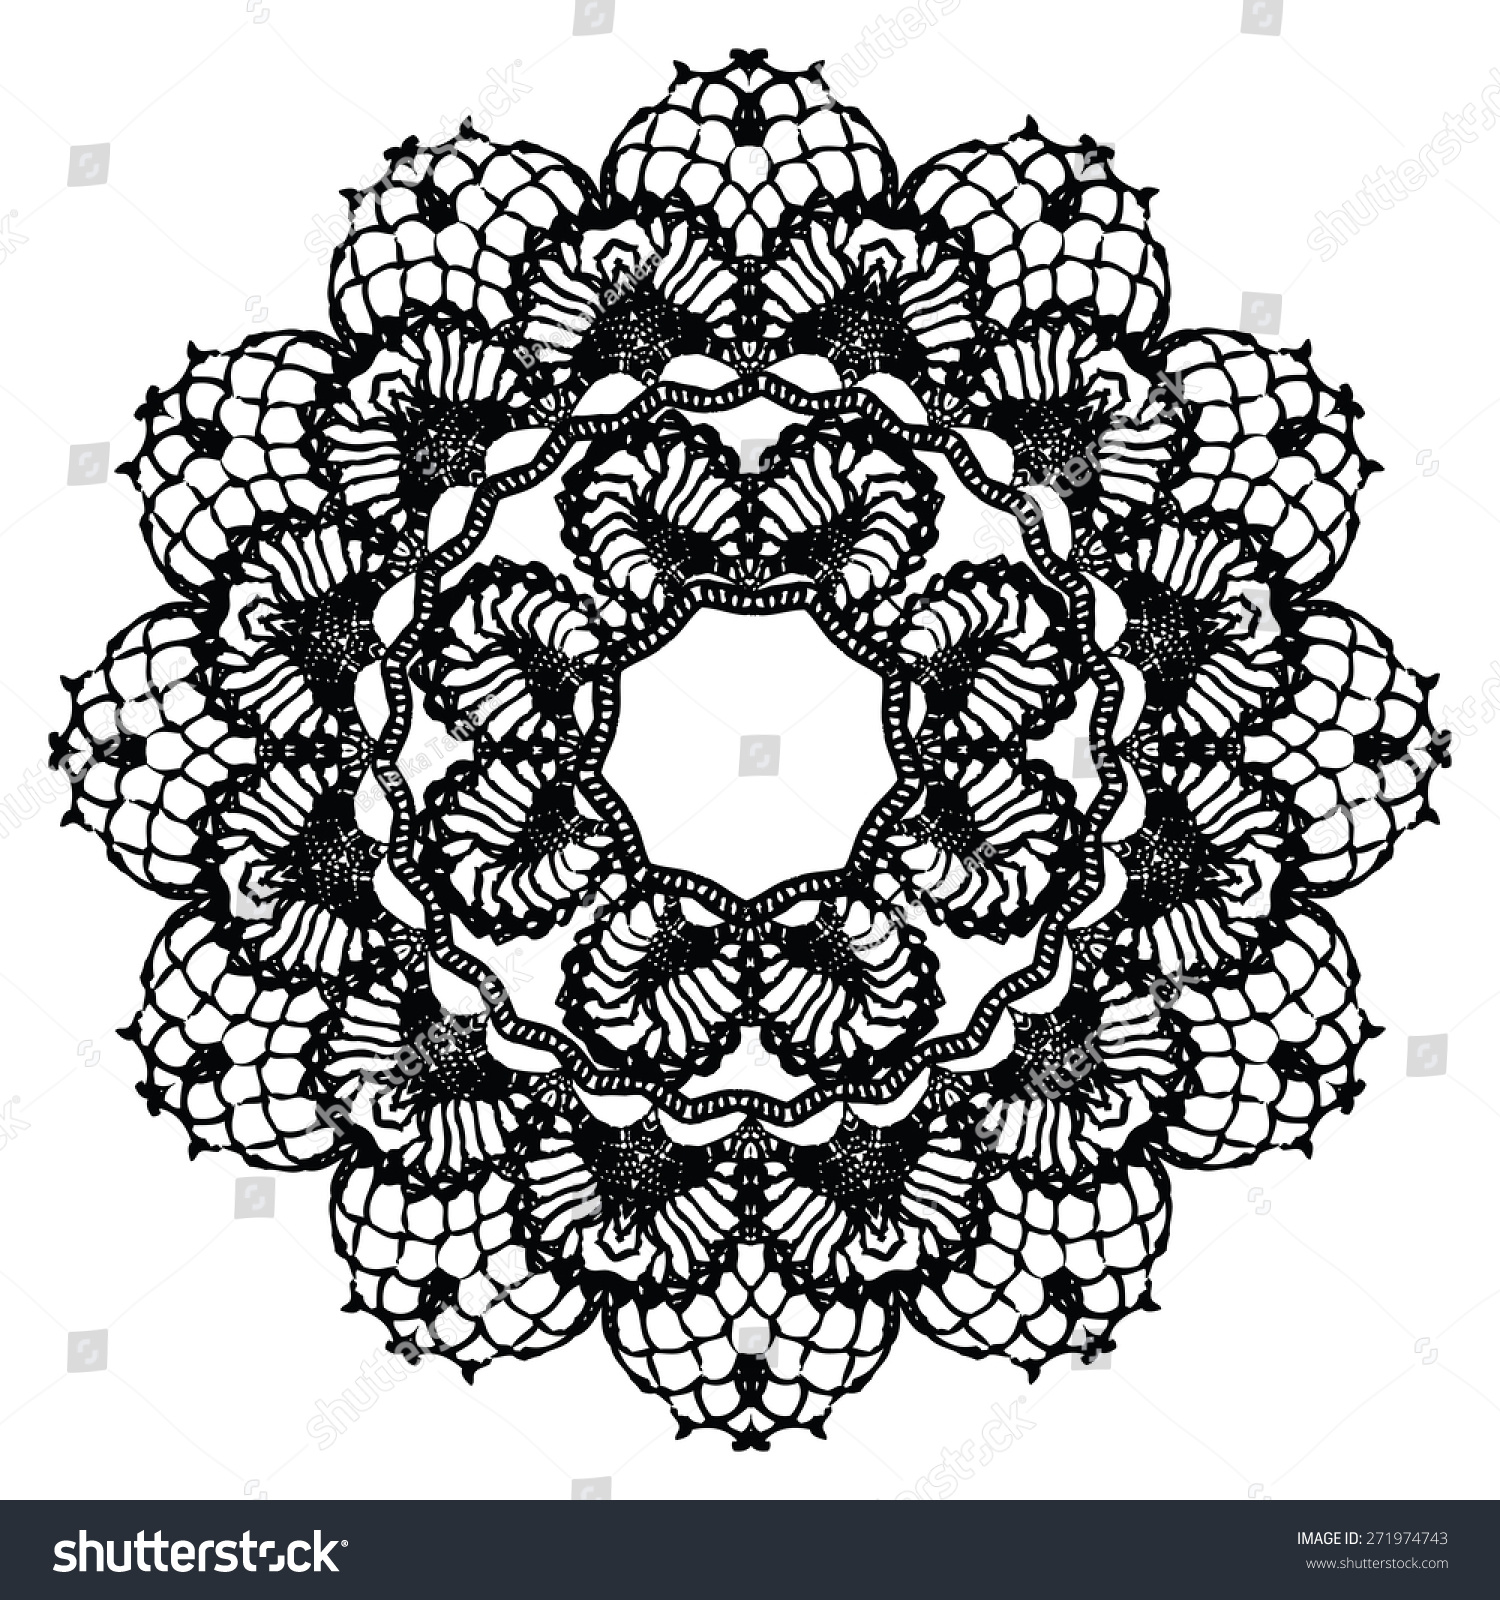 stock-vector-black-crochet-doily-vector-illustration-may-be-used-for ...